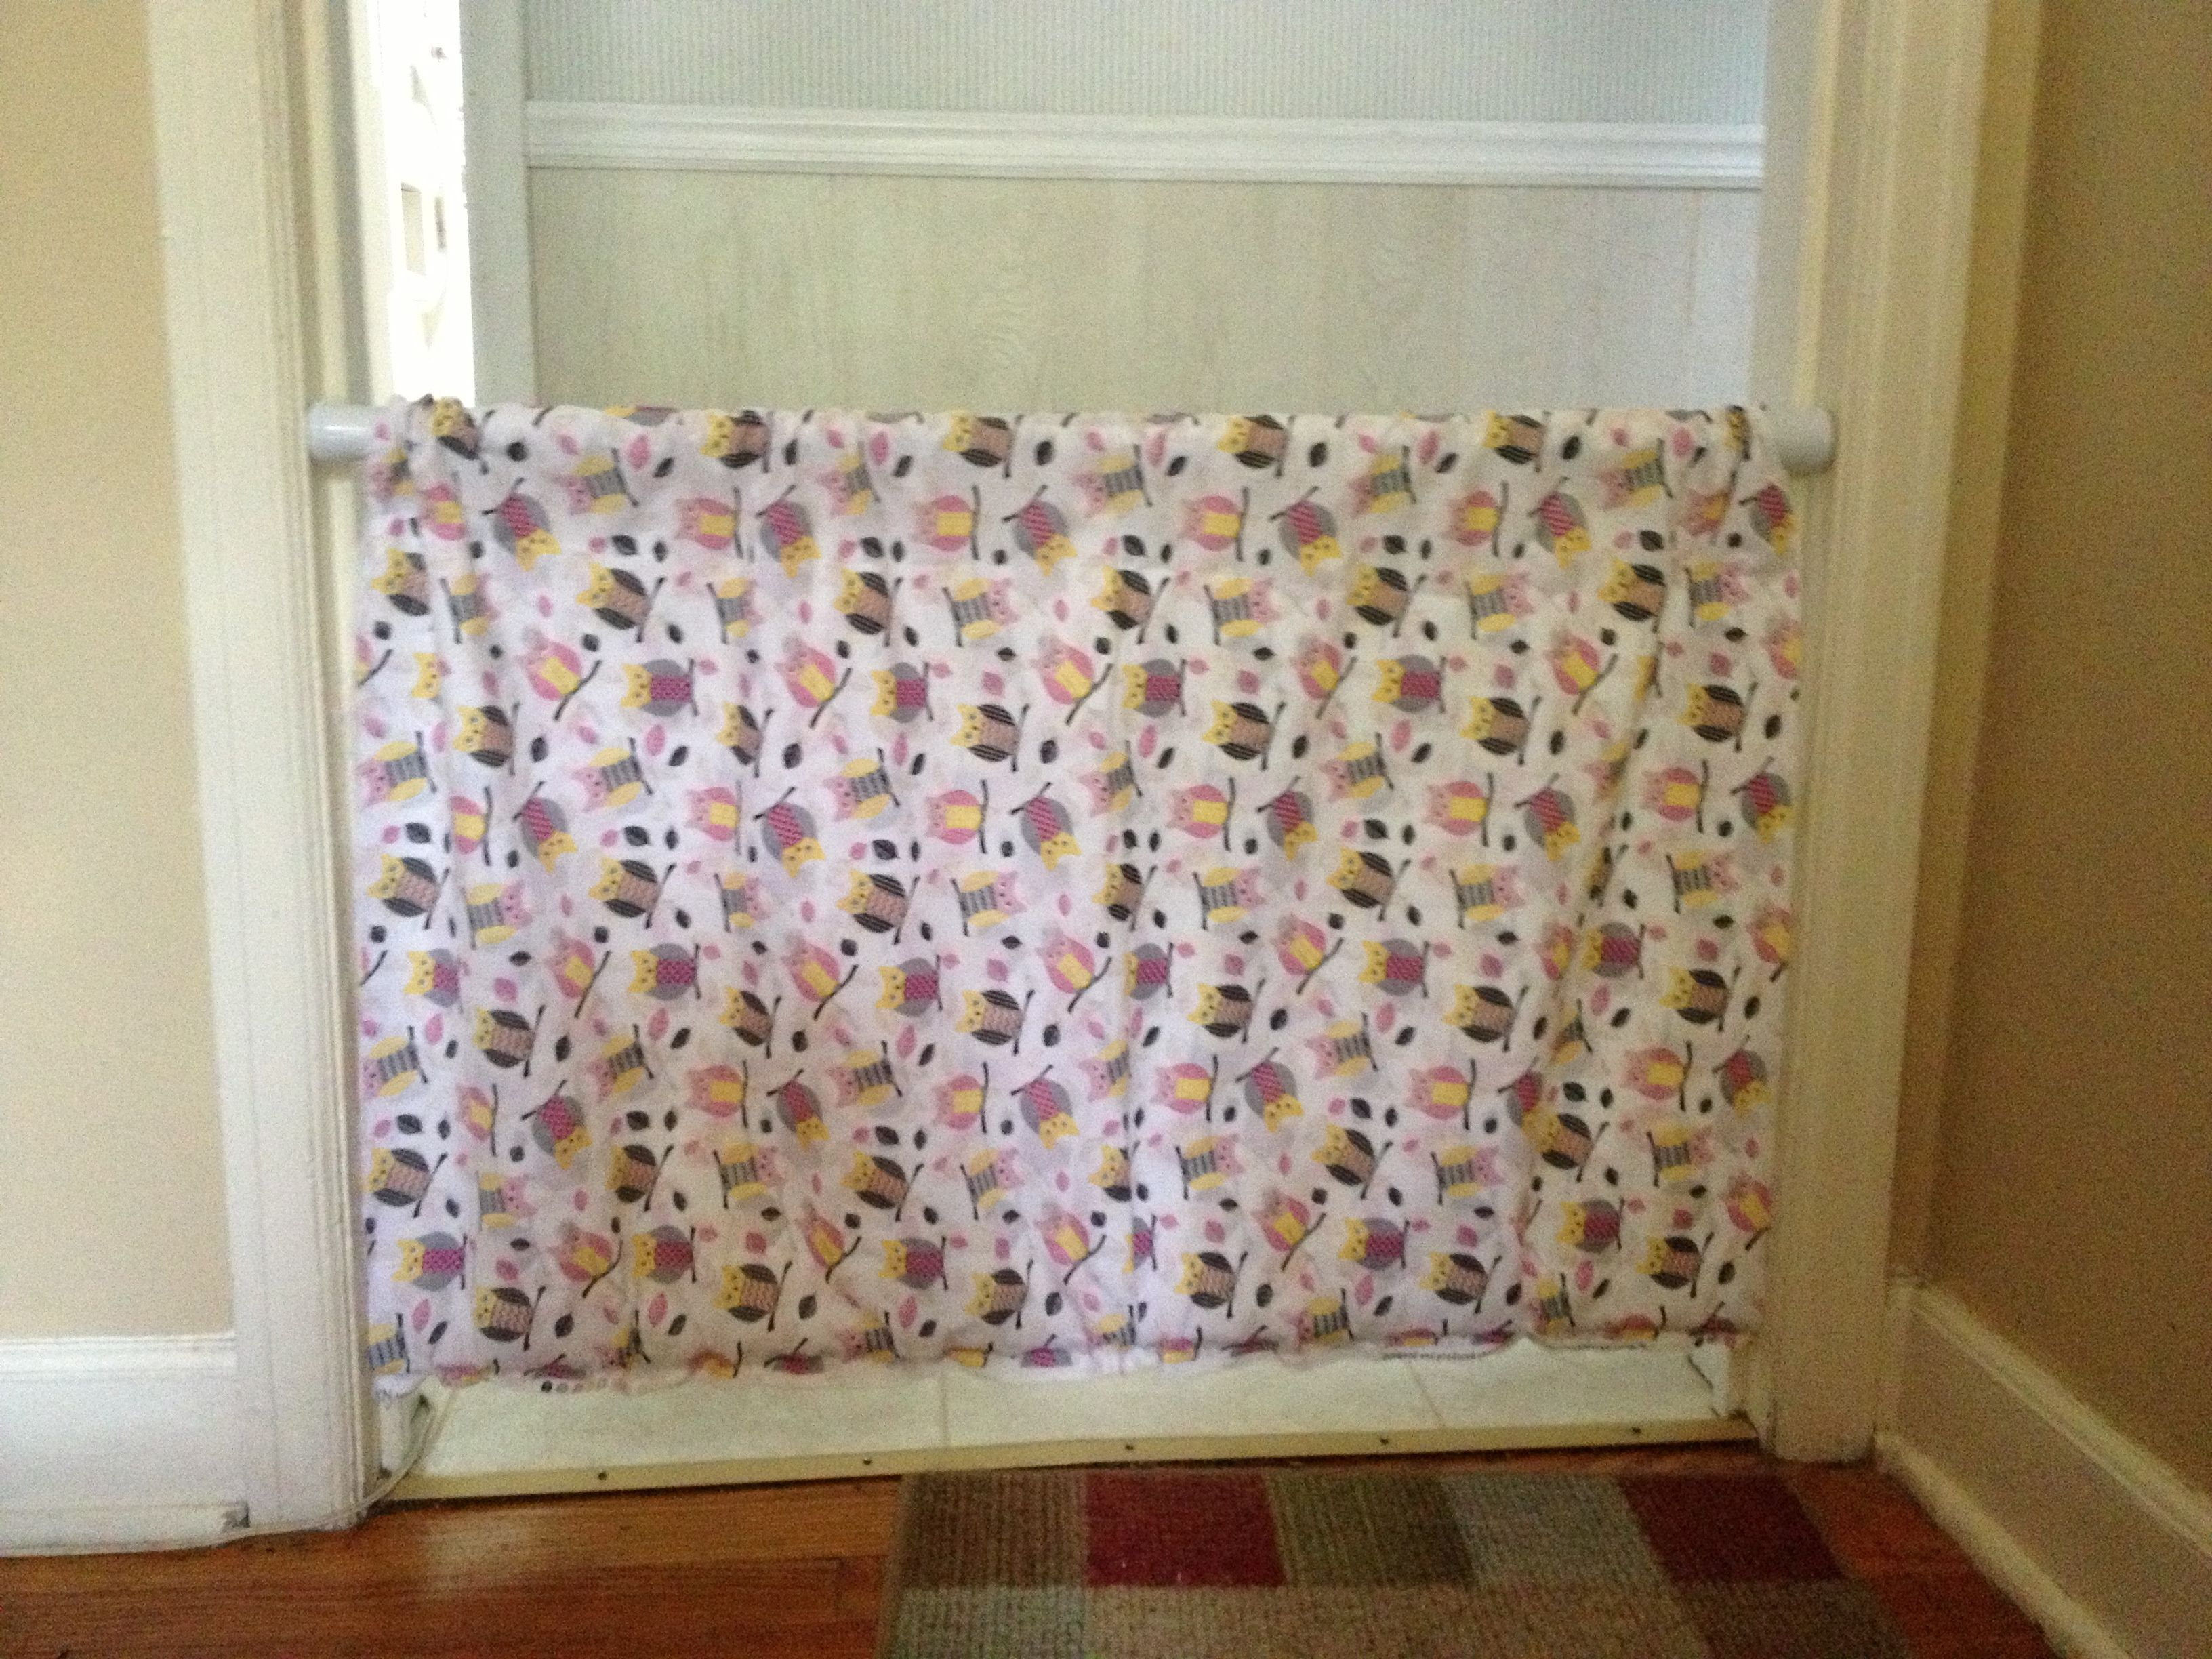 13 Diy Dog Gate Ideas: DIY Baby Gate With Tension Shower Curtain Rods.